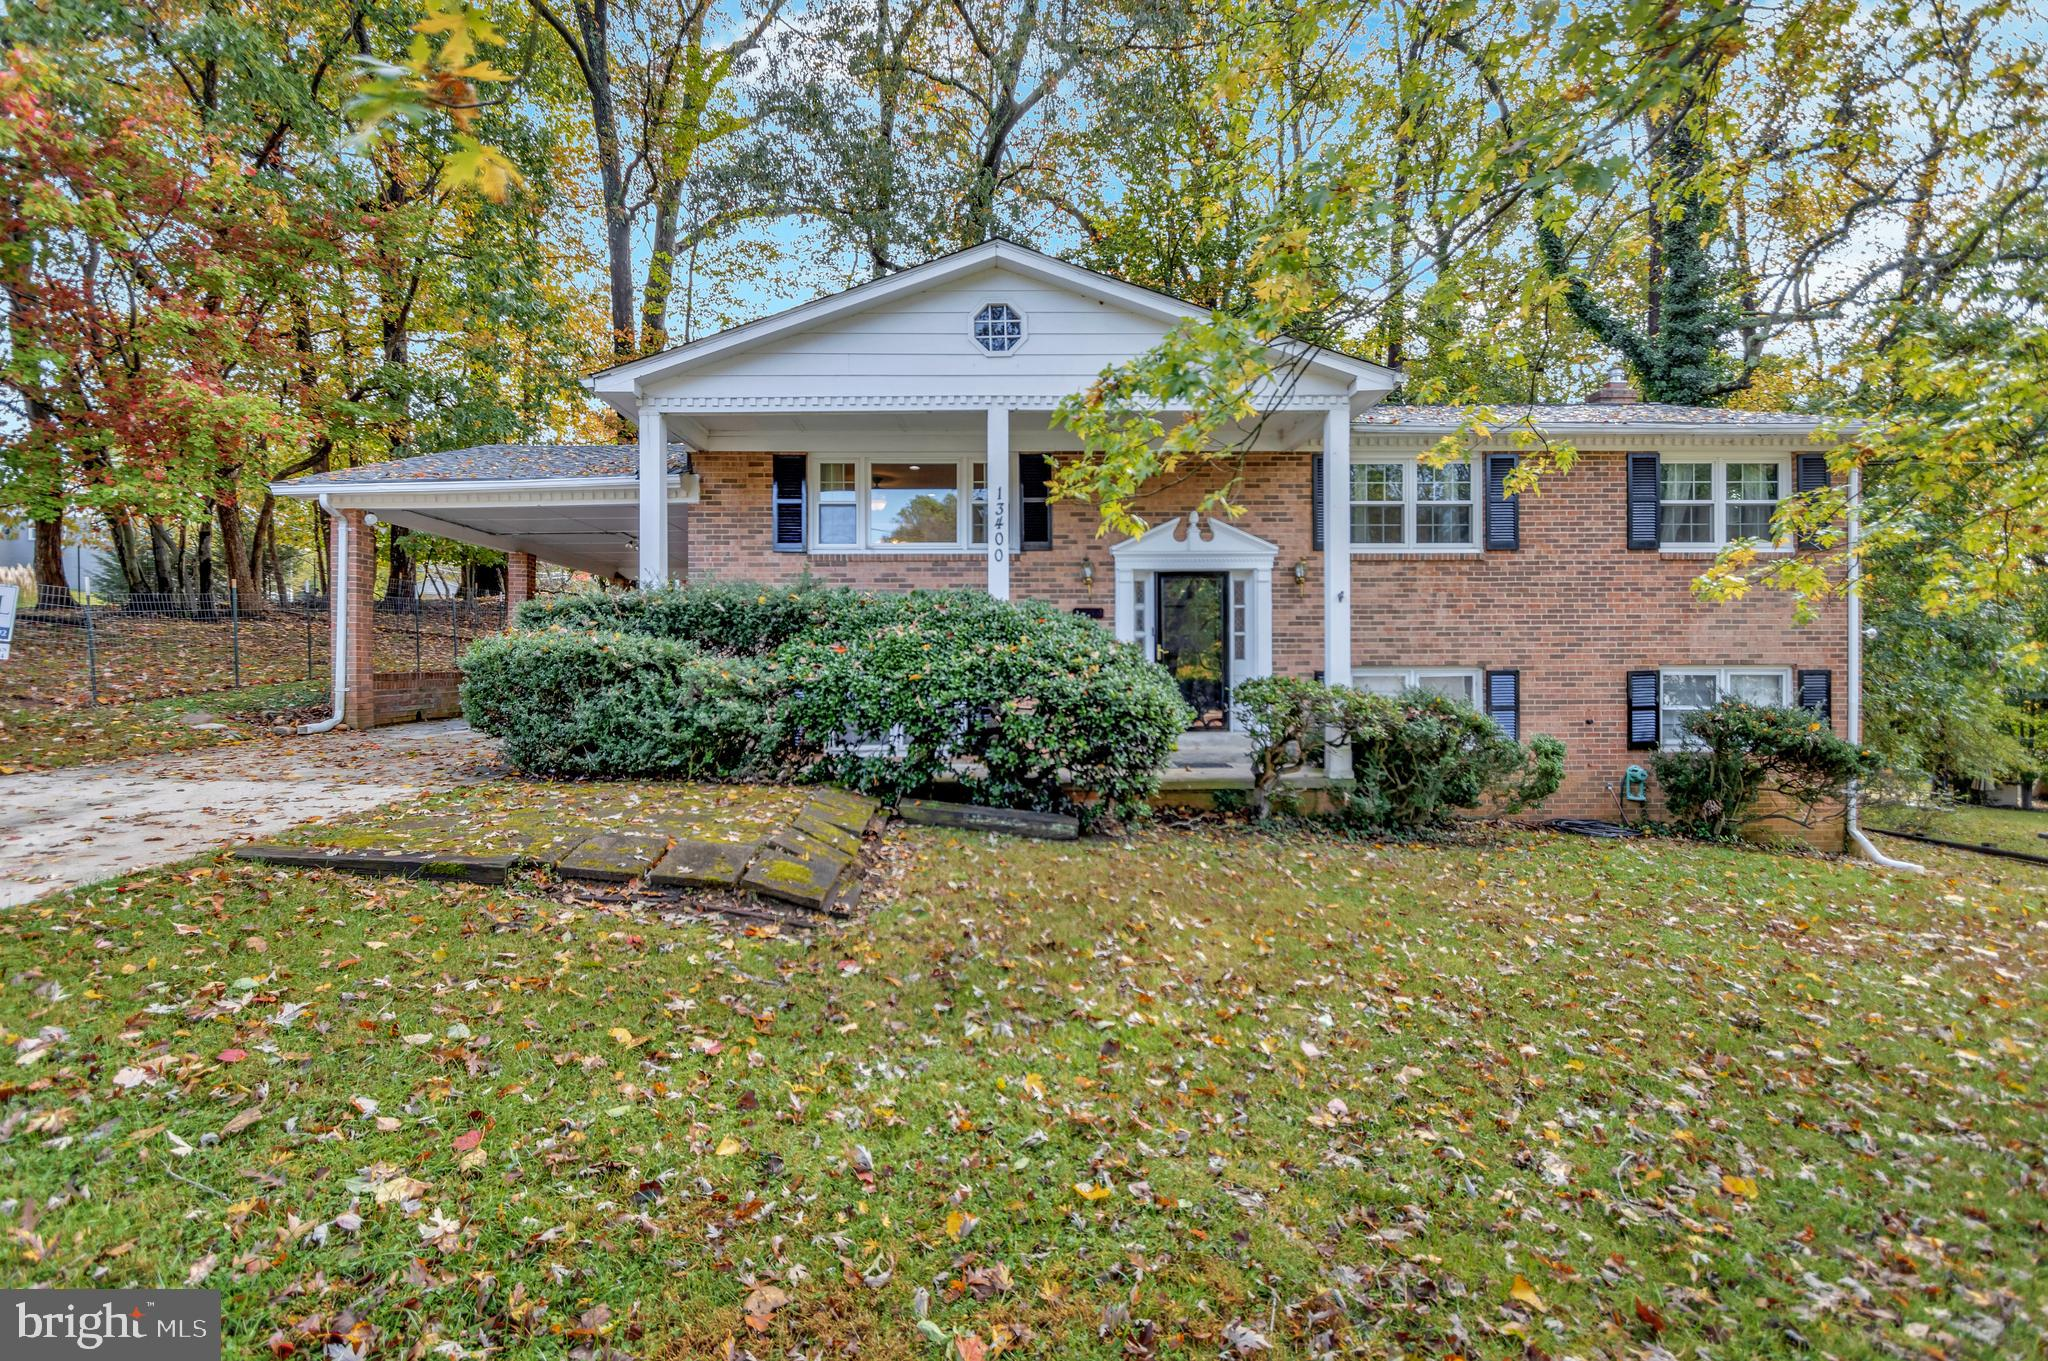 Great opportunity to purchase this beautiful well maintained home on a corner lot. Home has been upg